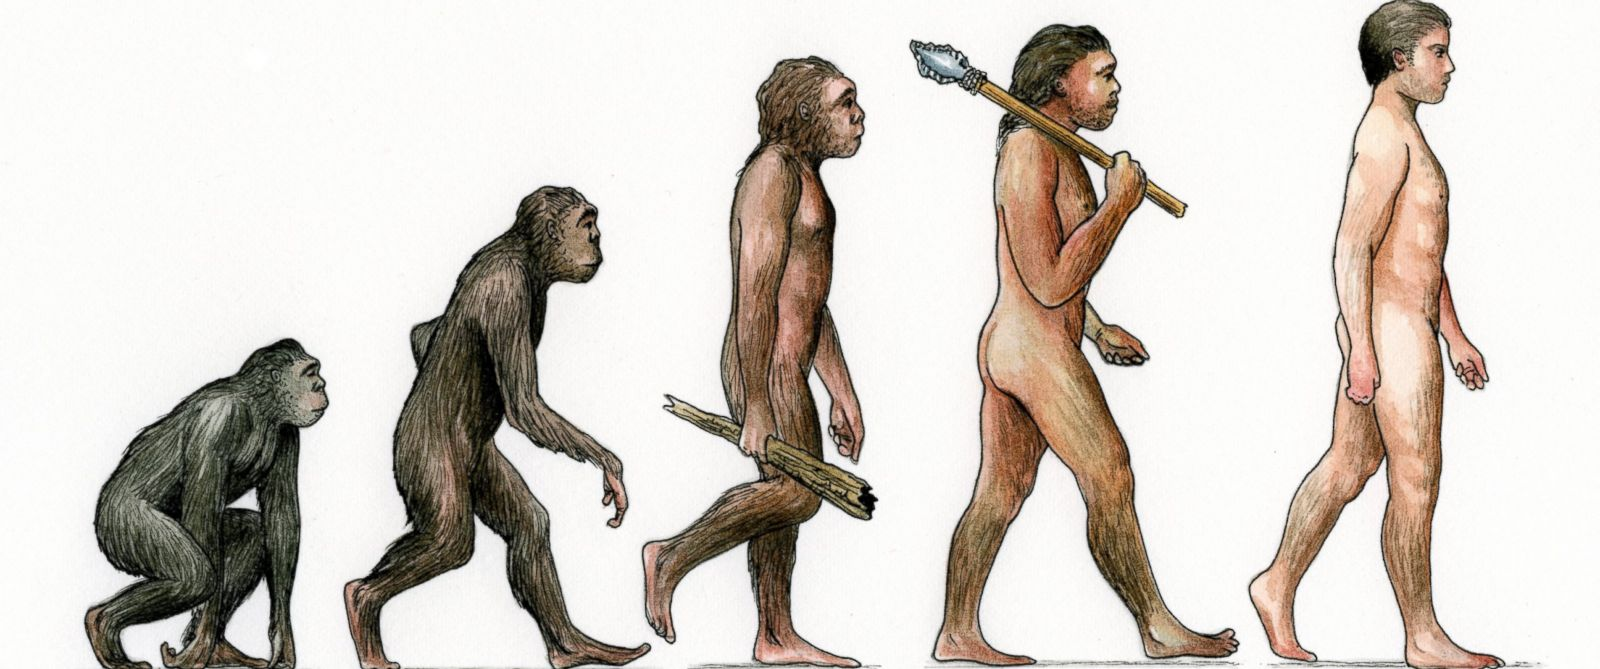 technological advances early man Piltdown man--eanthropus dawsoni or dawn man discovered in 1912 by charles dawson, a medical doctor and amateur paleontologist dawson found a mandible and a small piece of a skull in a gravel pit near piltdown england.